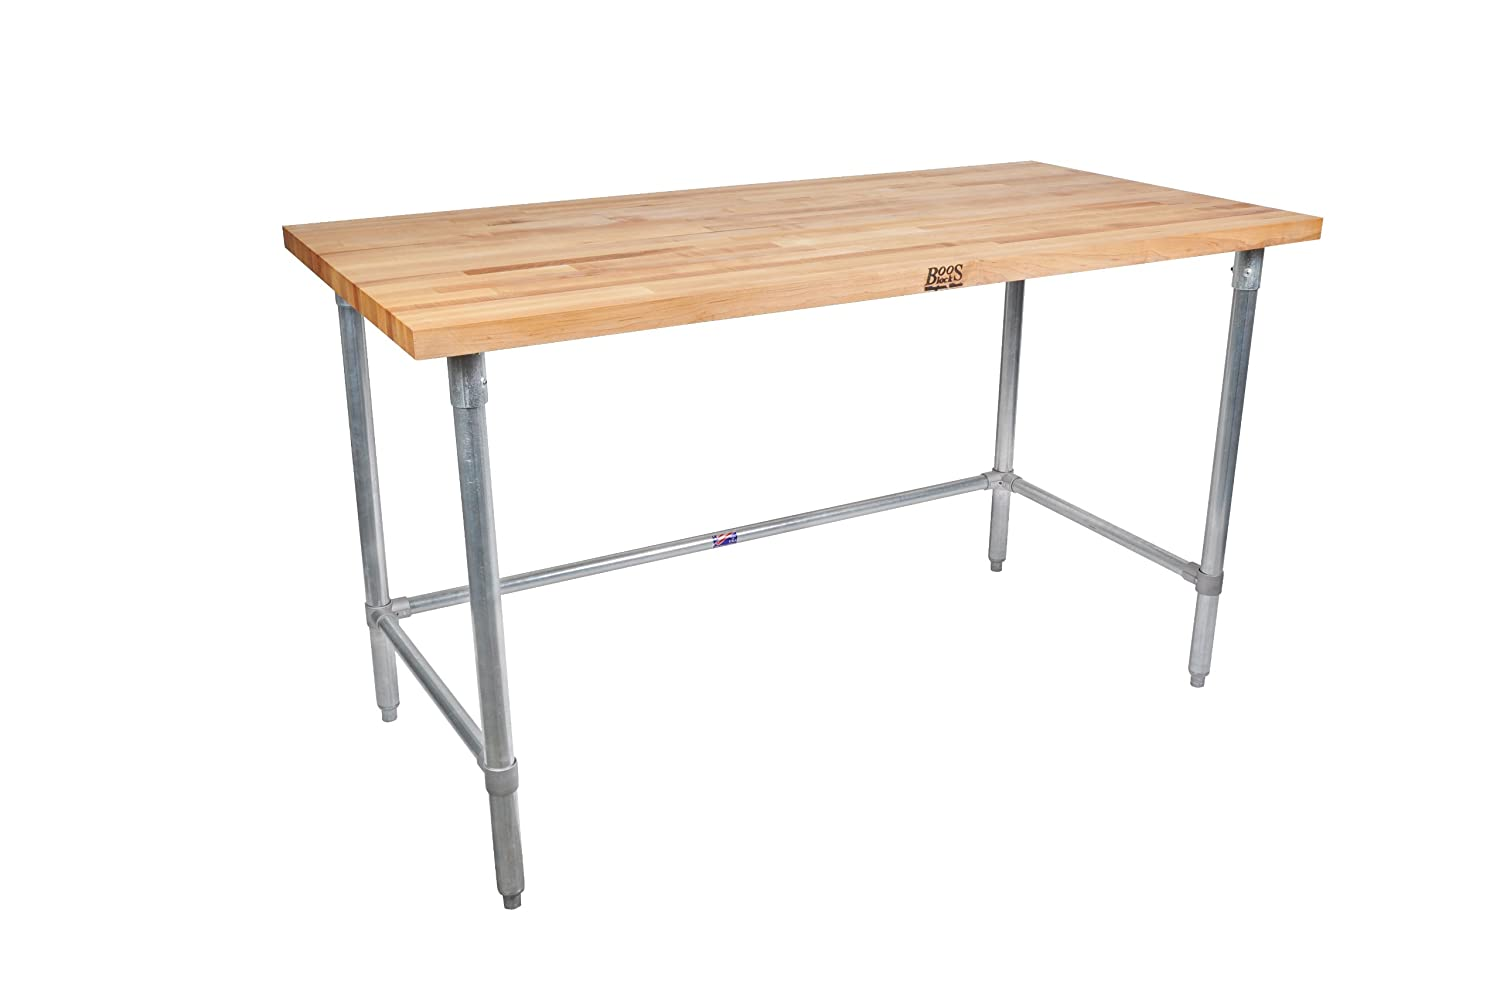 "John Boos JNB08 Maple Top Work Table with Galvanized Steel Base and Bracing, 48"" Long x 30"" Wide x 1-1/2"" Thick"